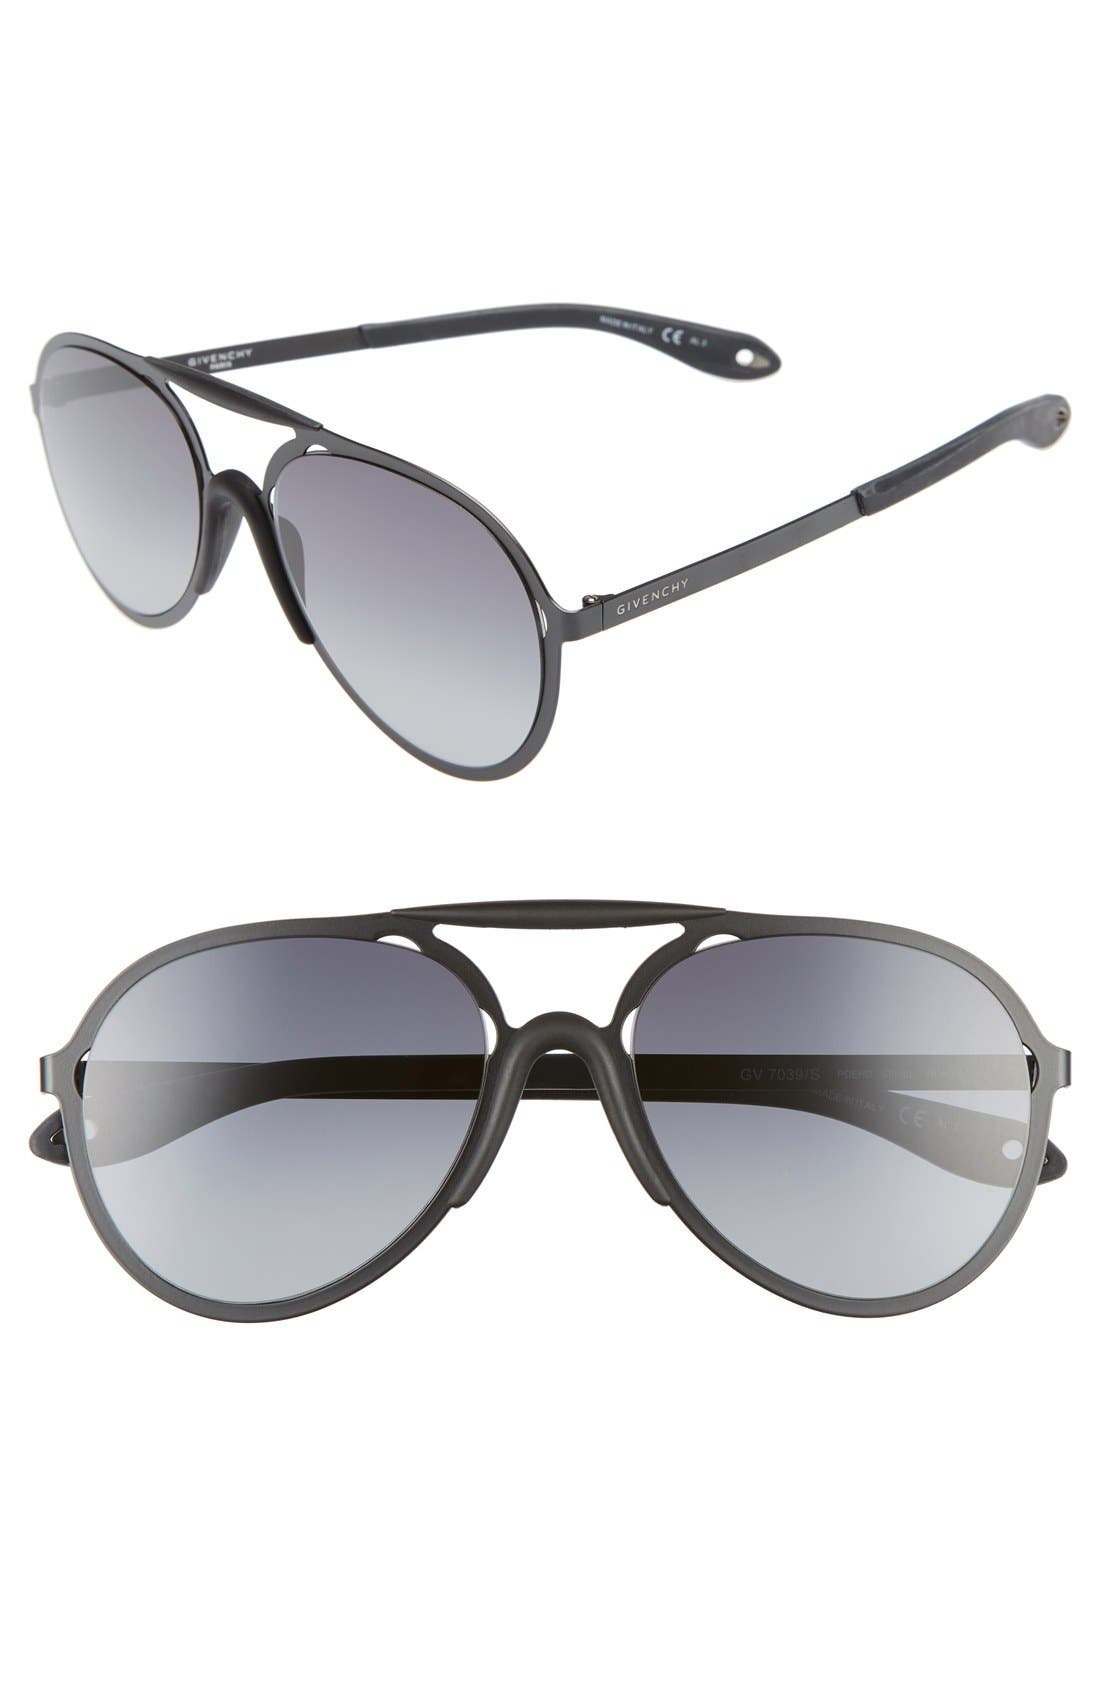 57mm Sunglasses,                             Main thumbnail 1, color,                             BLACK/ GREY GRADIENT